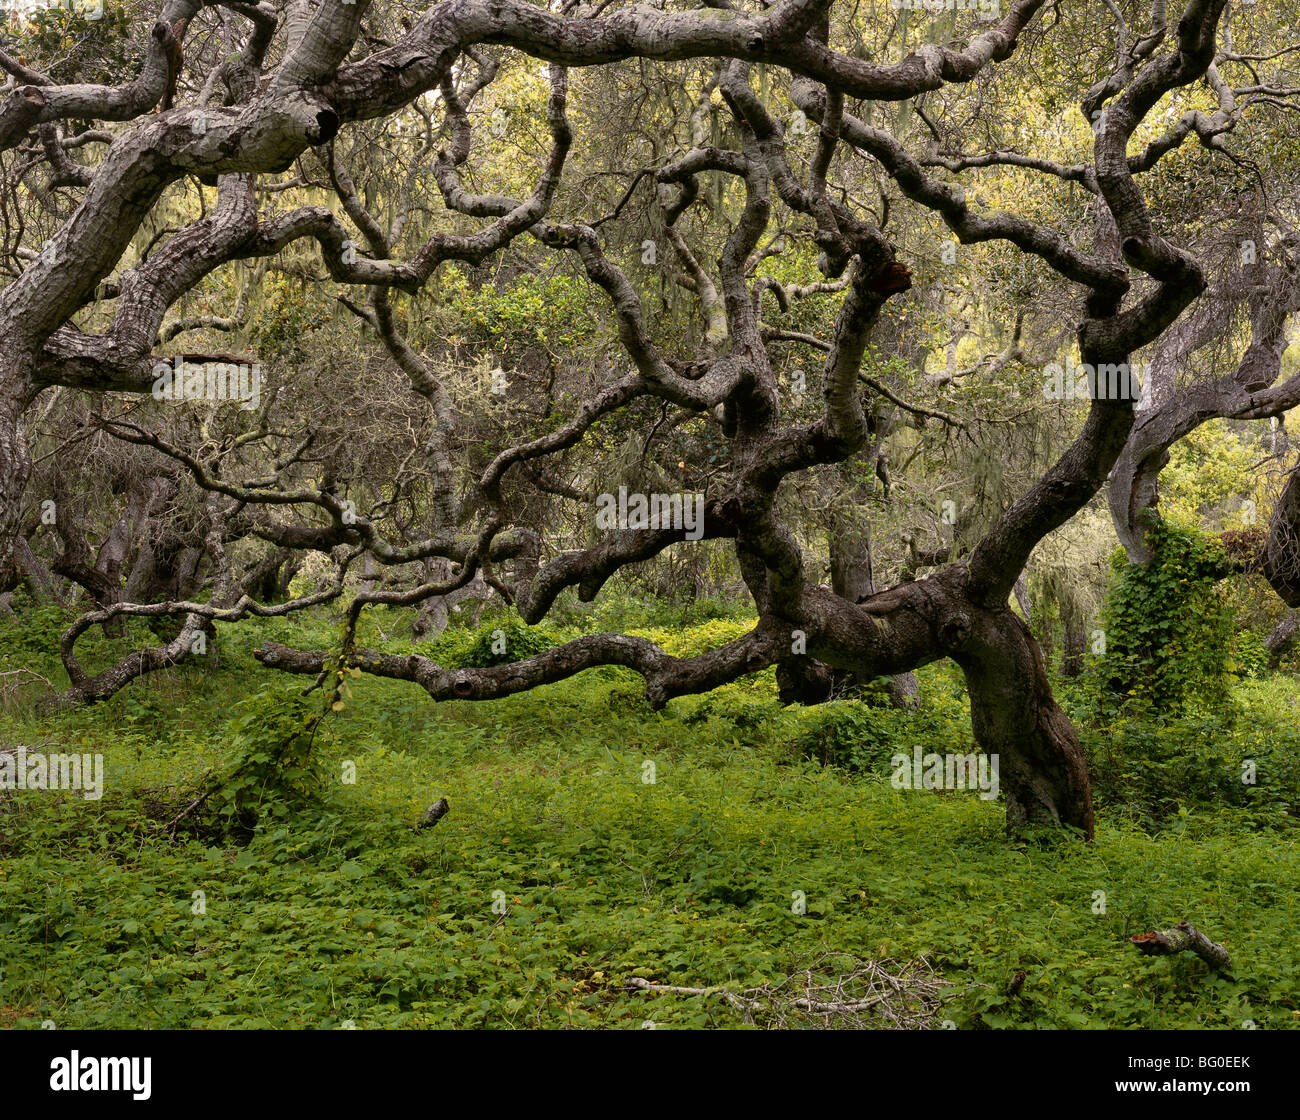 CALIFORNIA - Coast Live Oaks in Los Osos Oaks State Reserve near Morro Bay. - Stock Image